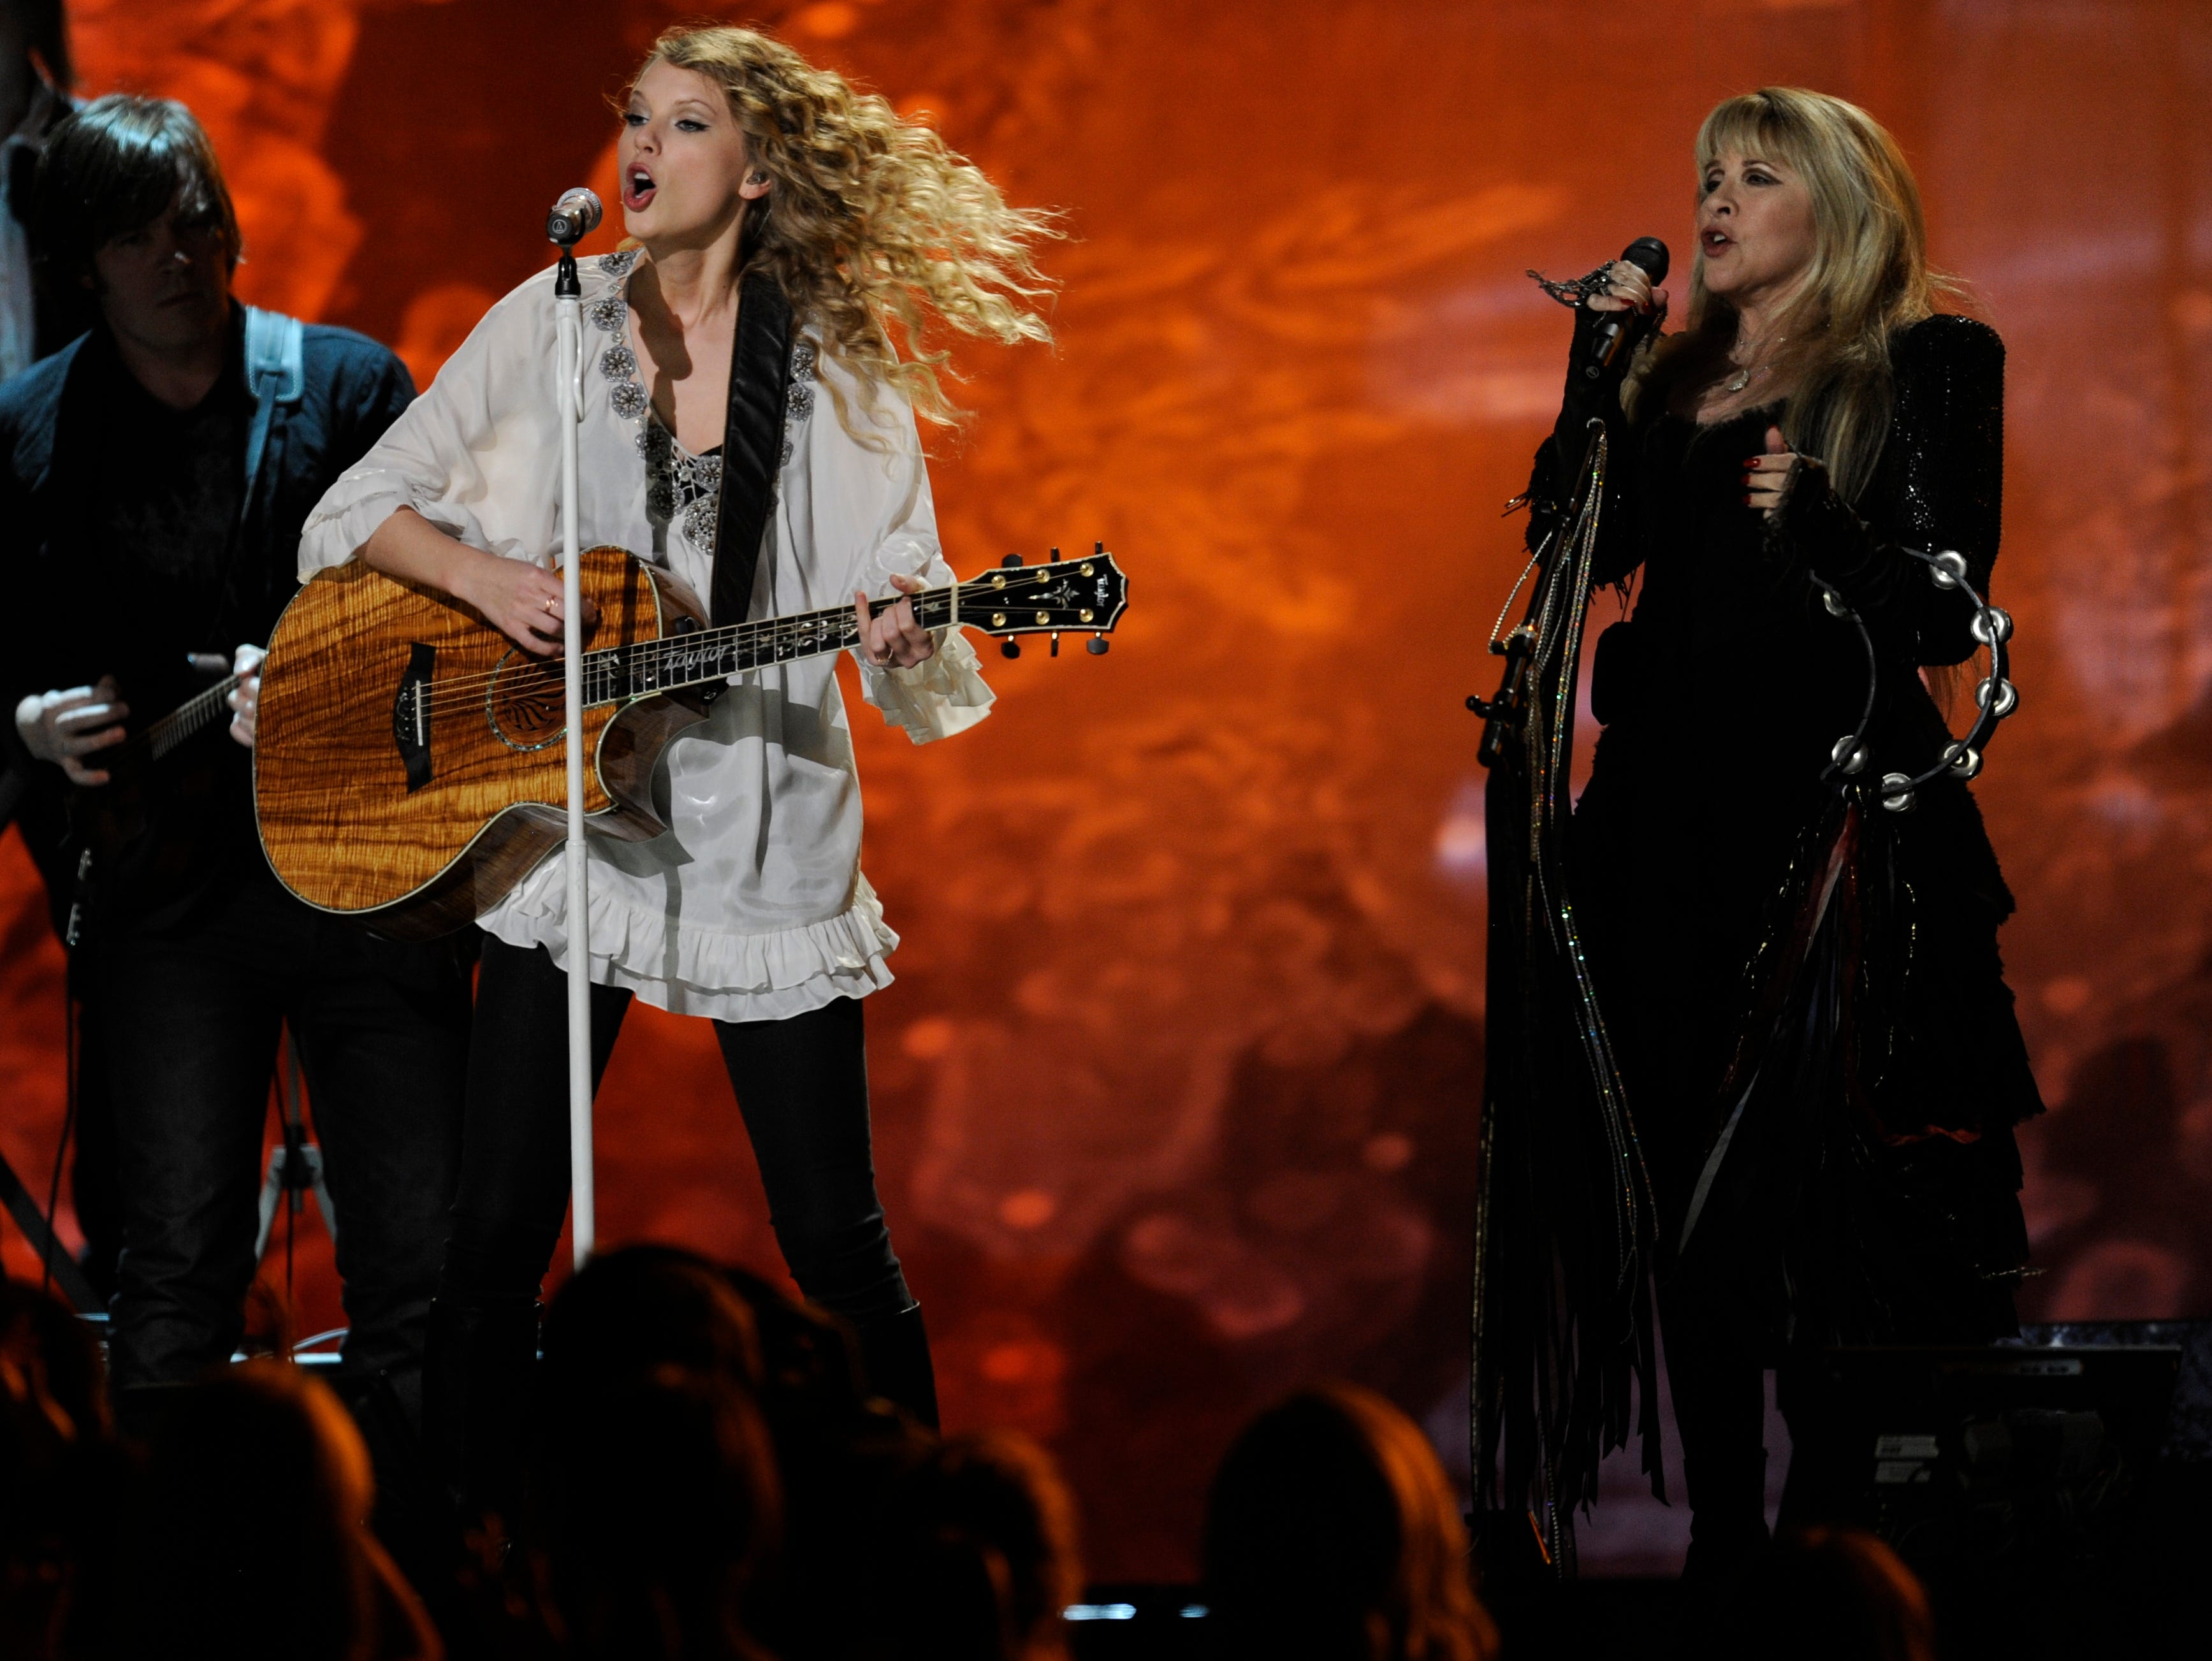 1/31/10 7:47:43 PM -- Los Angeles, CA, U.S.A